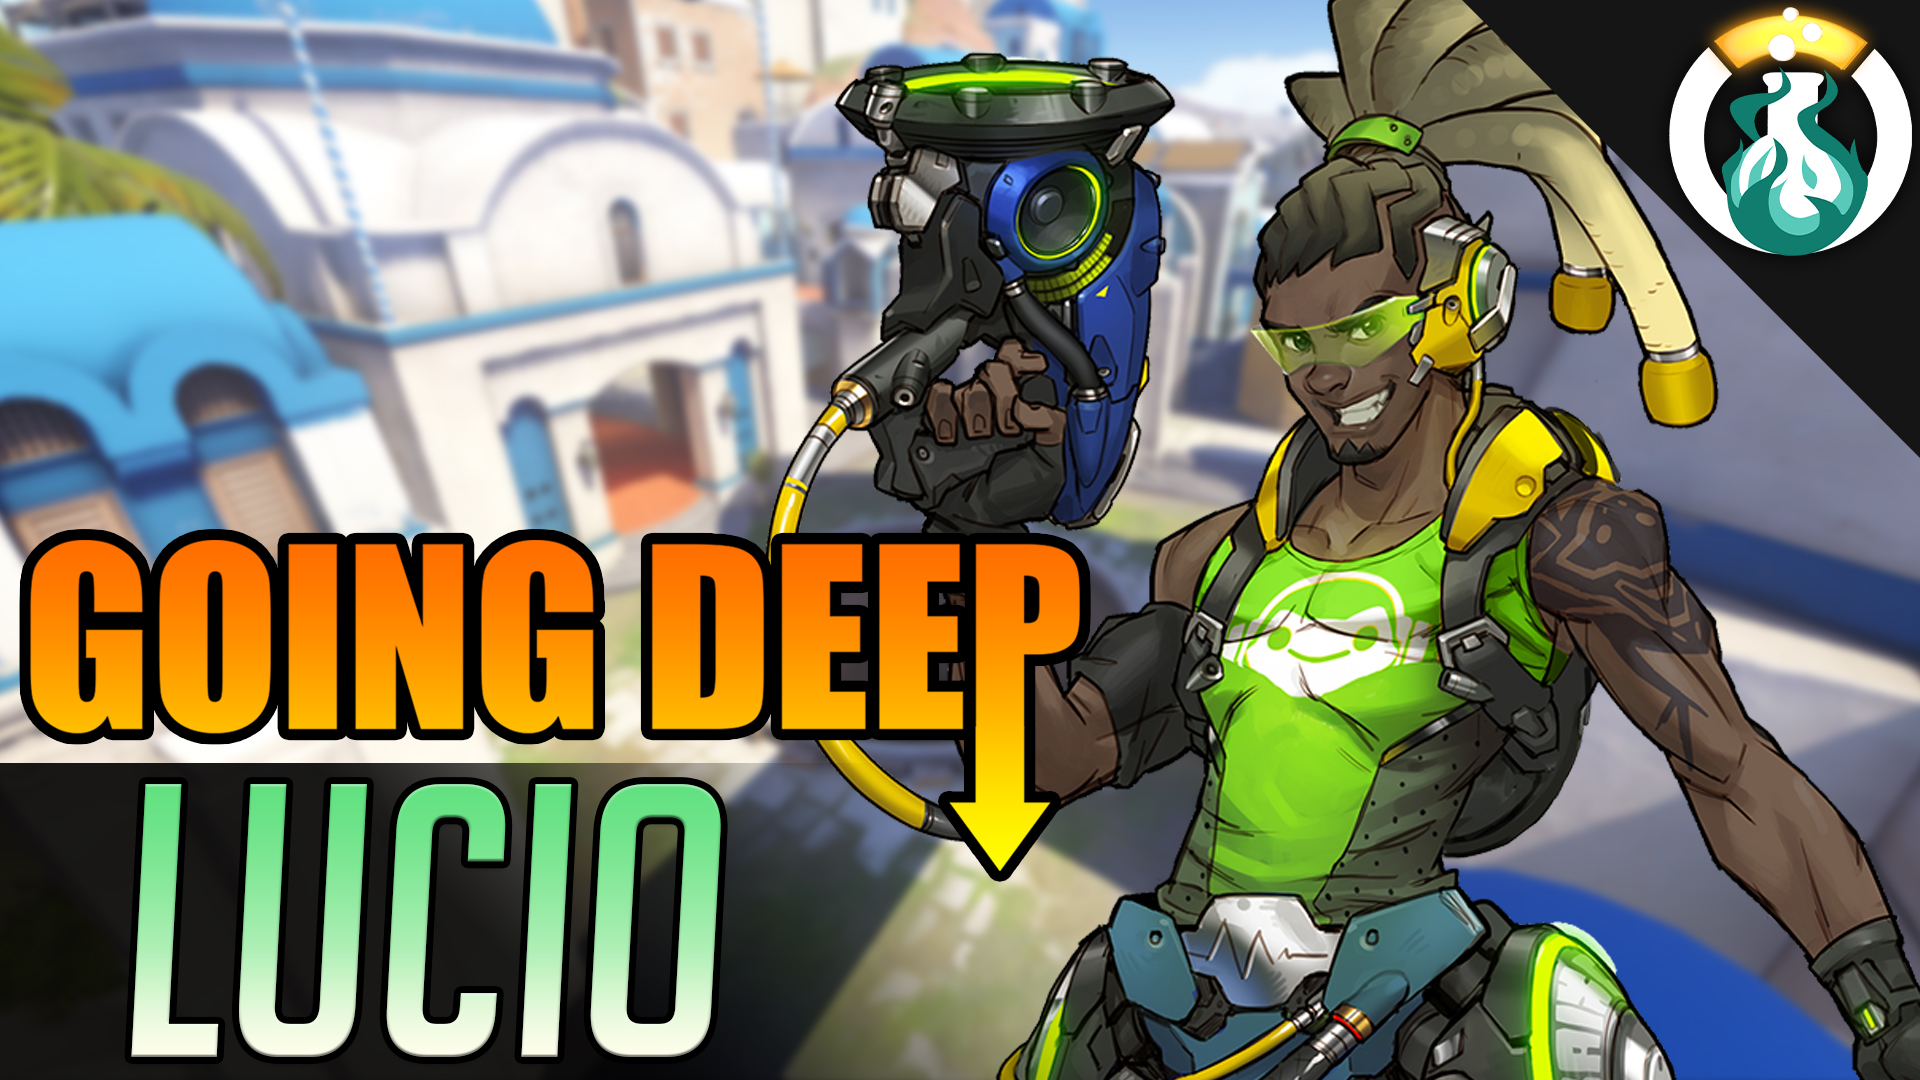 Omnic-Lab-YouTube-Card-92-Lucio.jpg